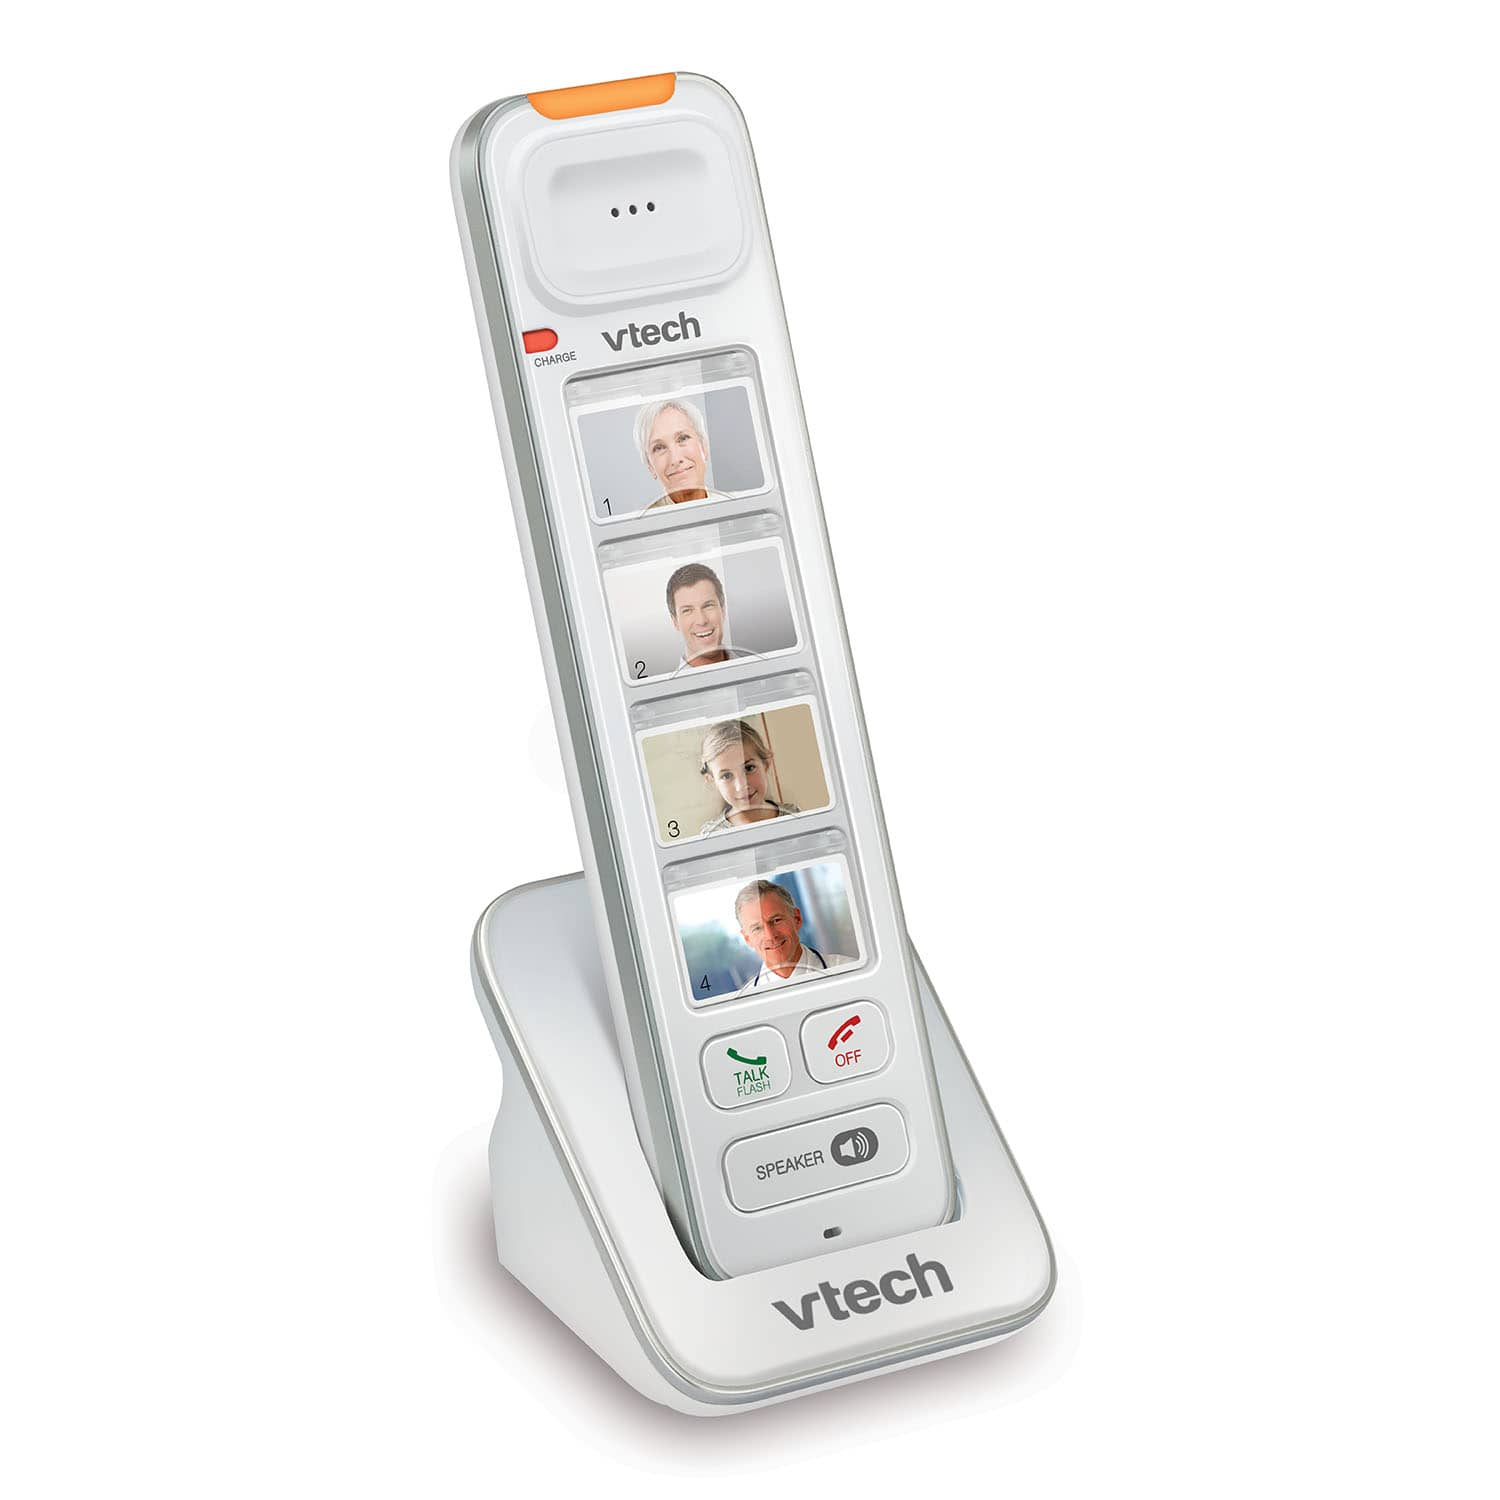 SN6307 VTech CareLine VTECH R Accessory Handset with Photo Speed Dial R R